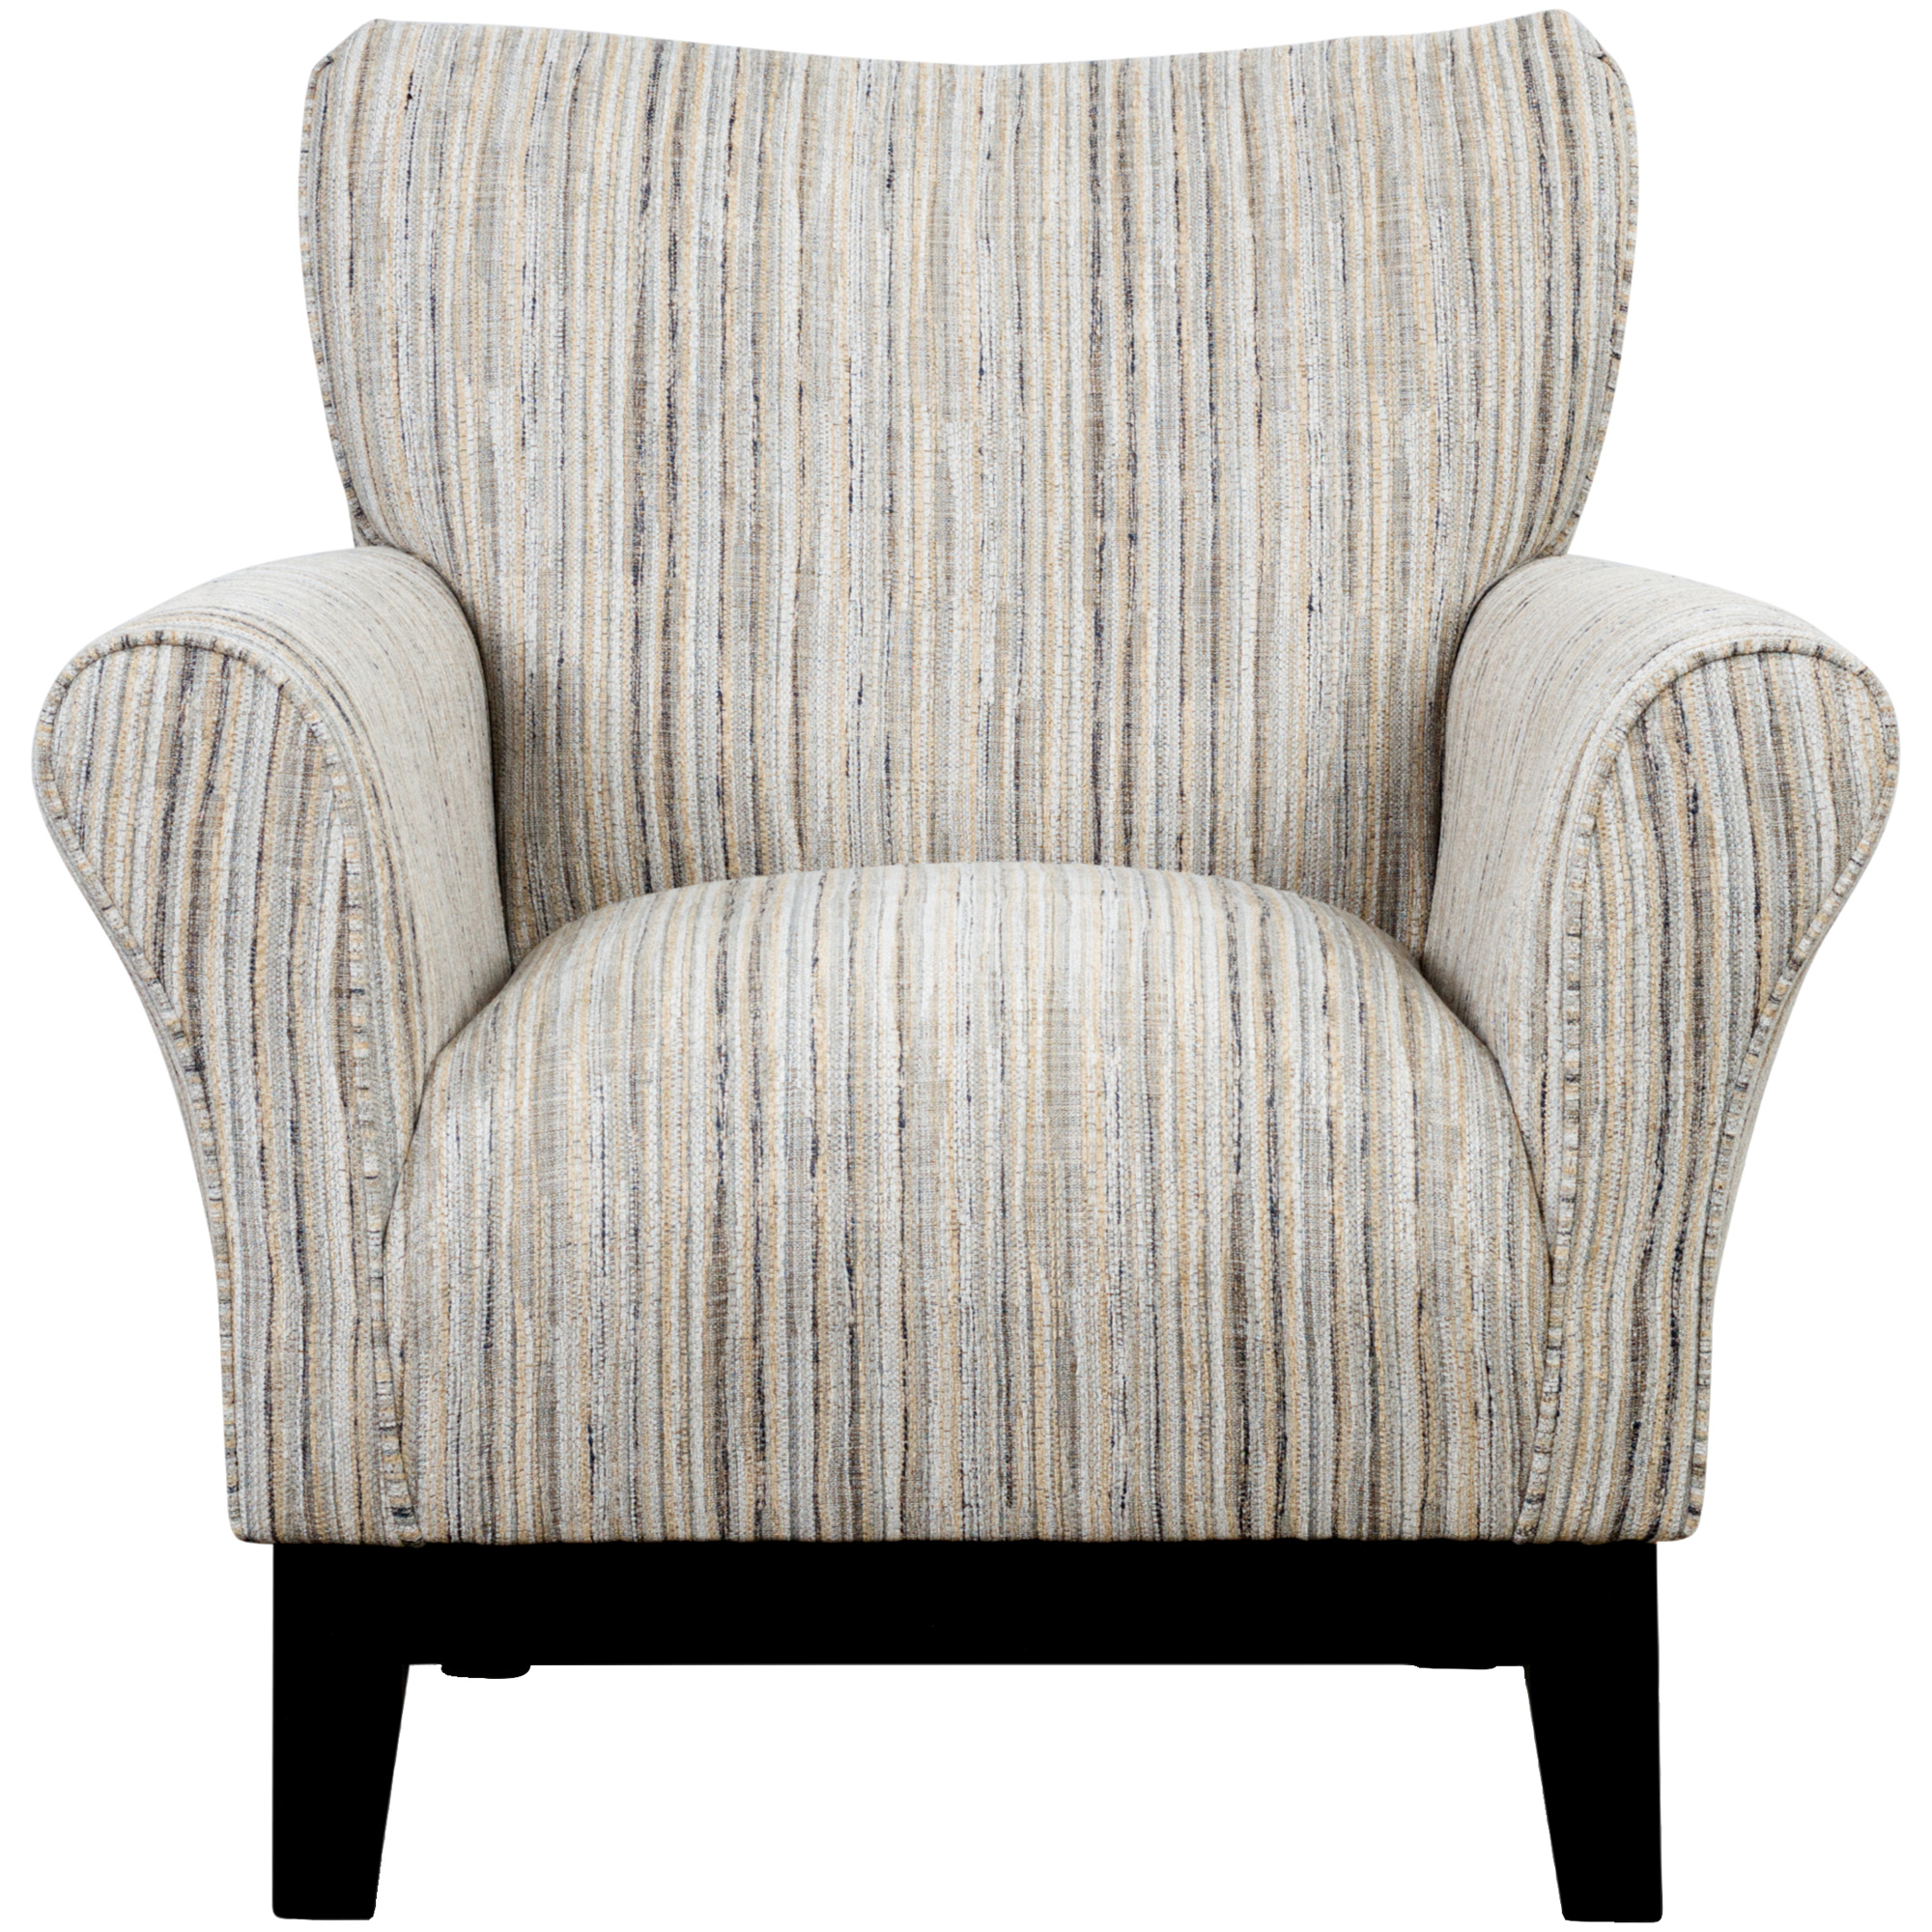 Best Home Furnishings | Aiden Gray Club Chair